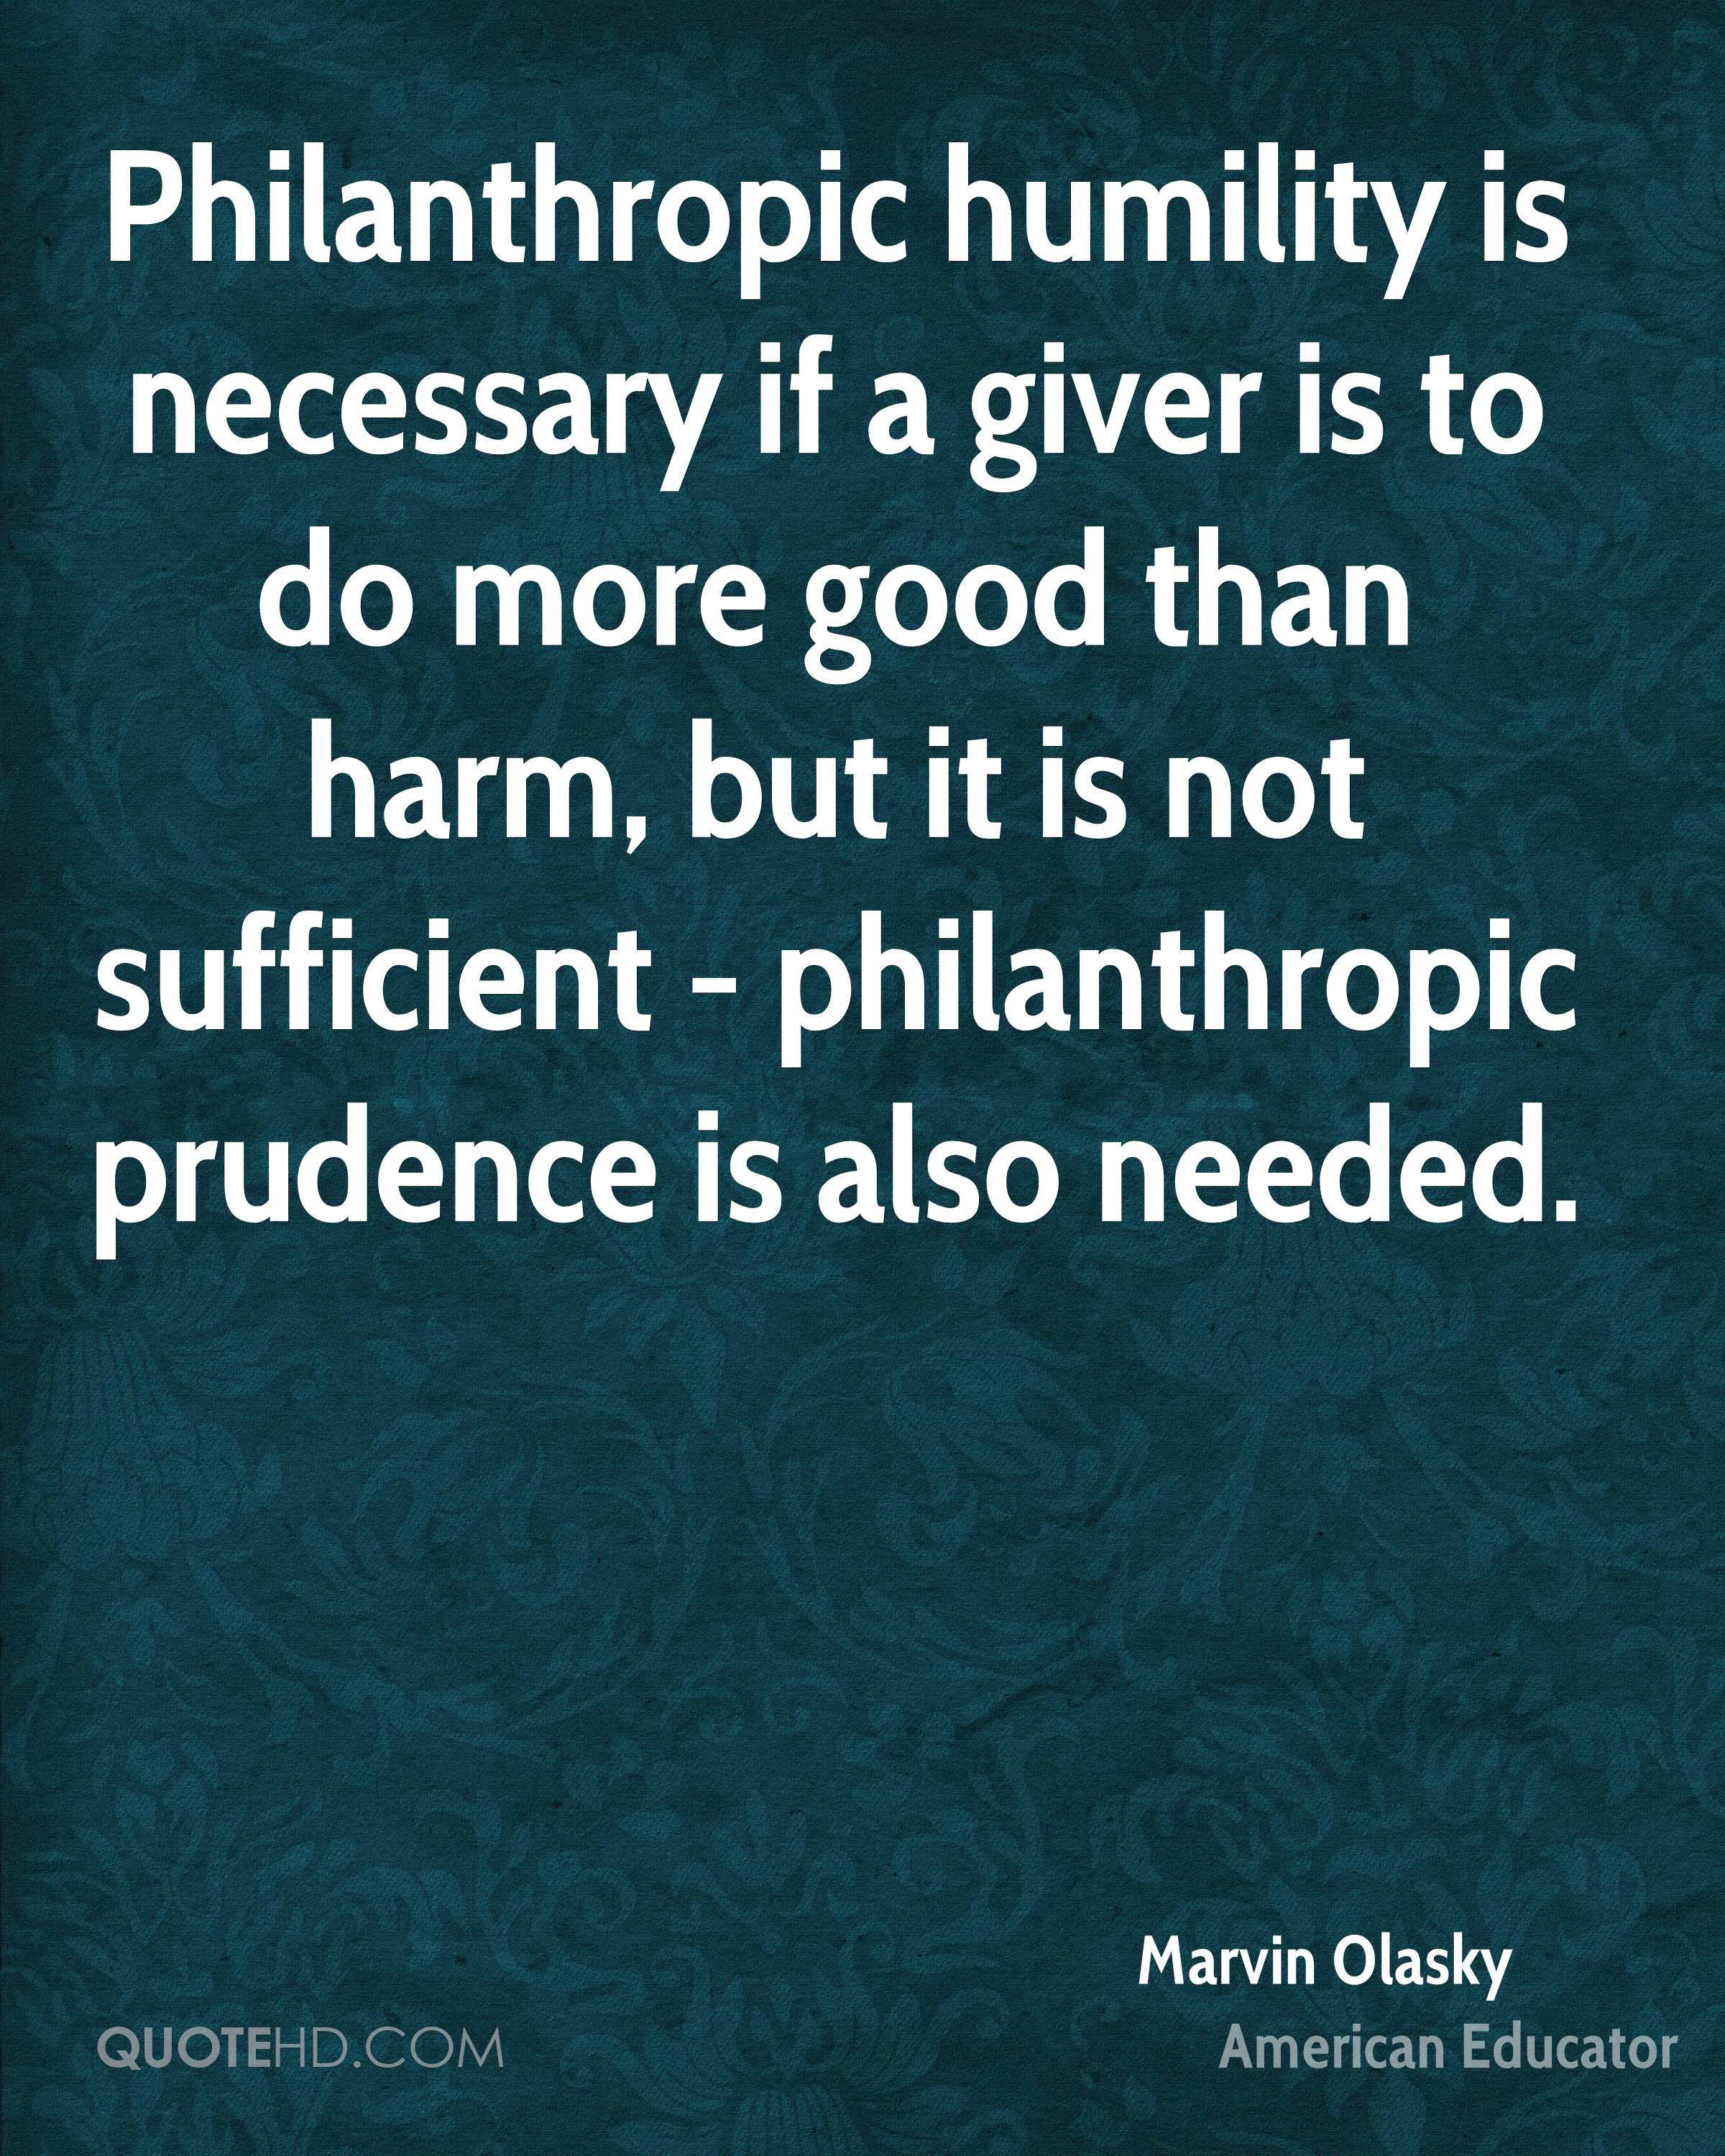 Philanthropic humility is necessary if a giver is to do more good than harm, but it is not sufficient - philanthropic prudence is also needed.